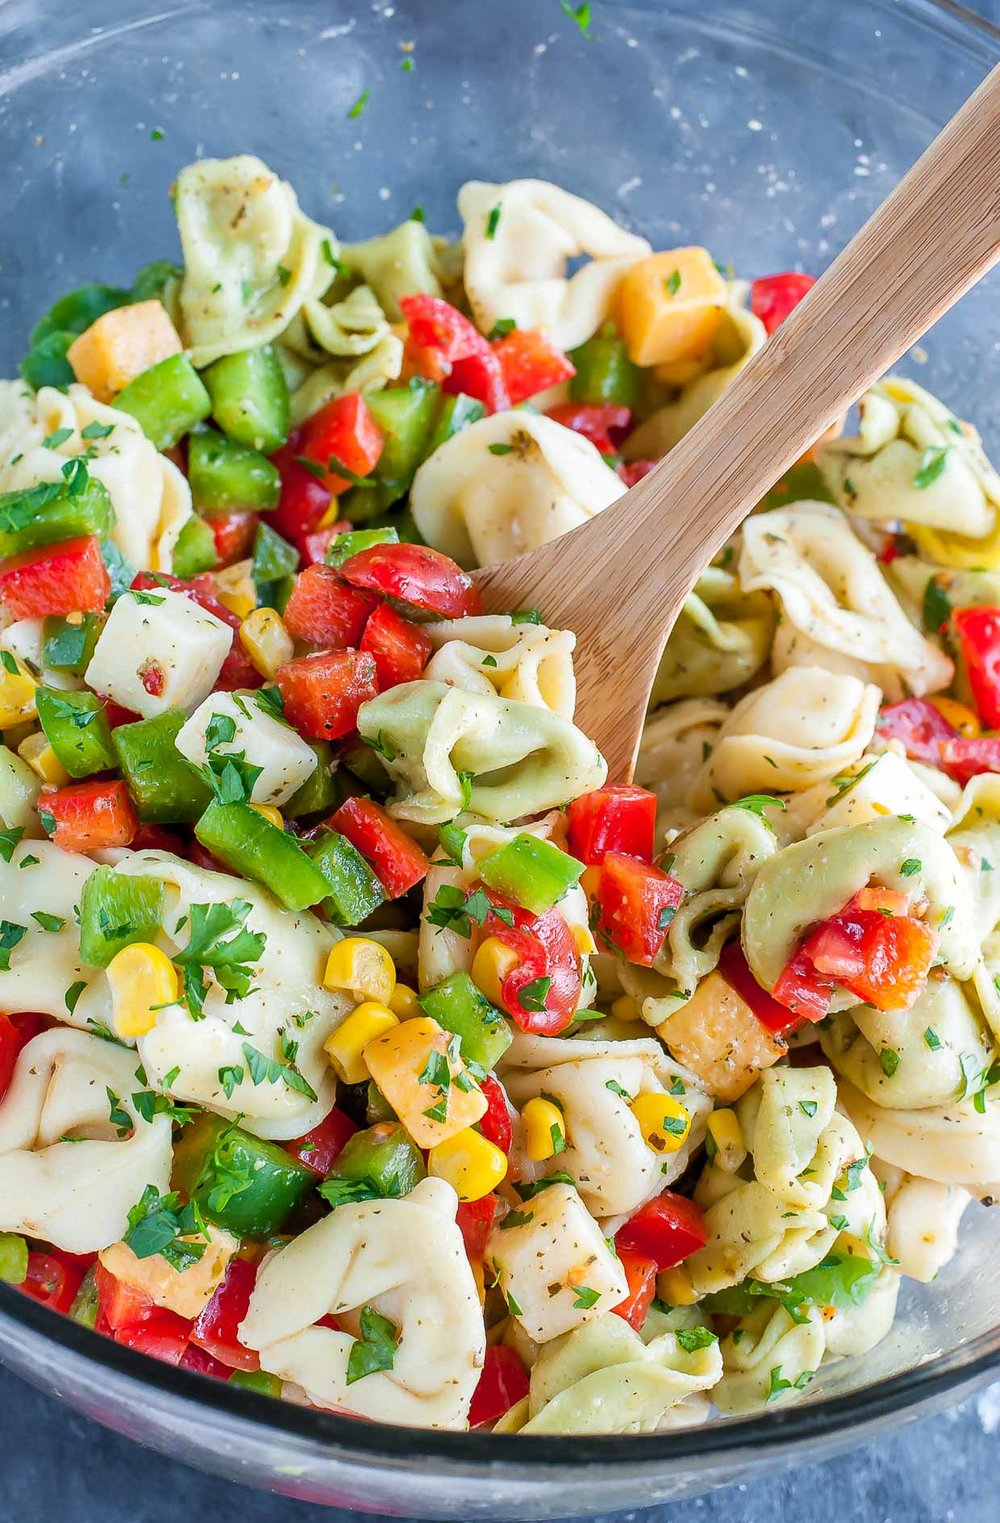 make-ahead-party-perfect-garden-veggie-tortellini-pasta-salad-peasandcrayons-0498.jpg